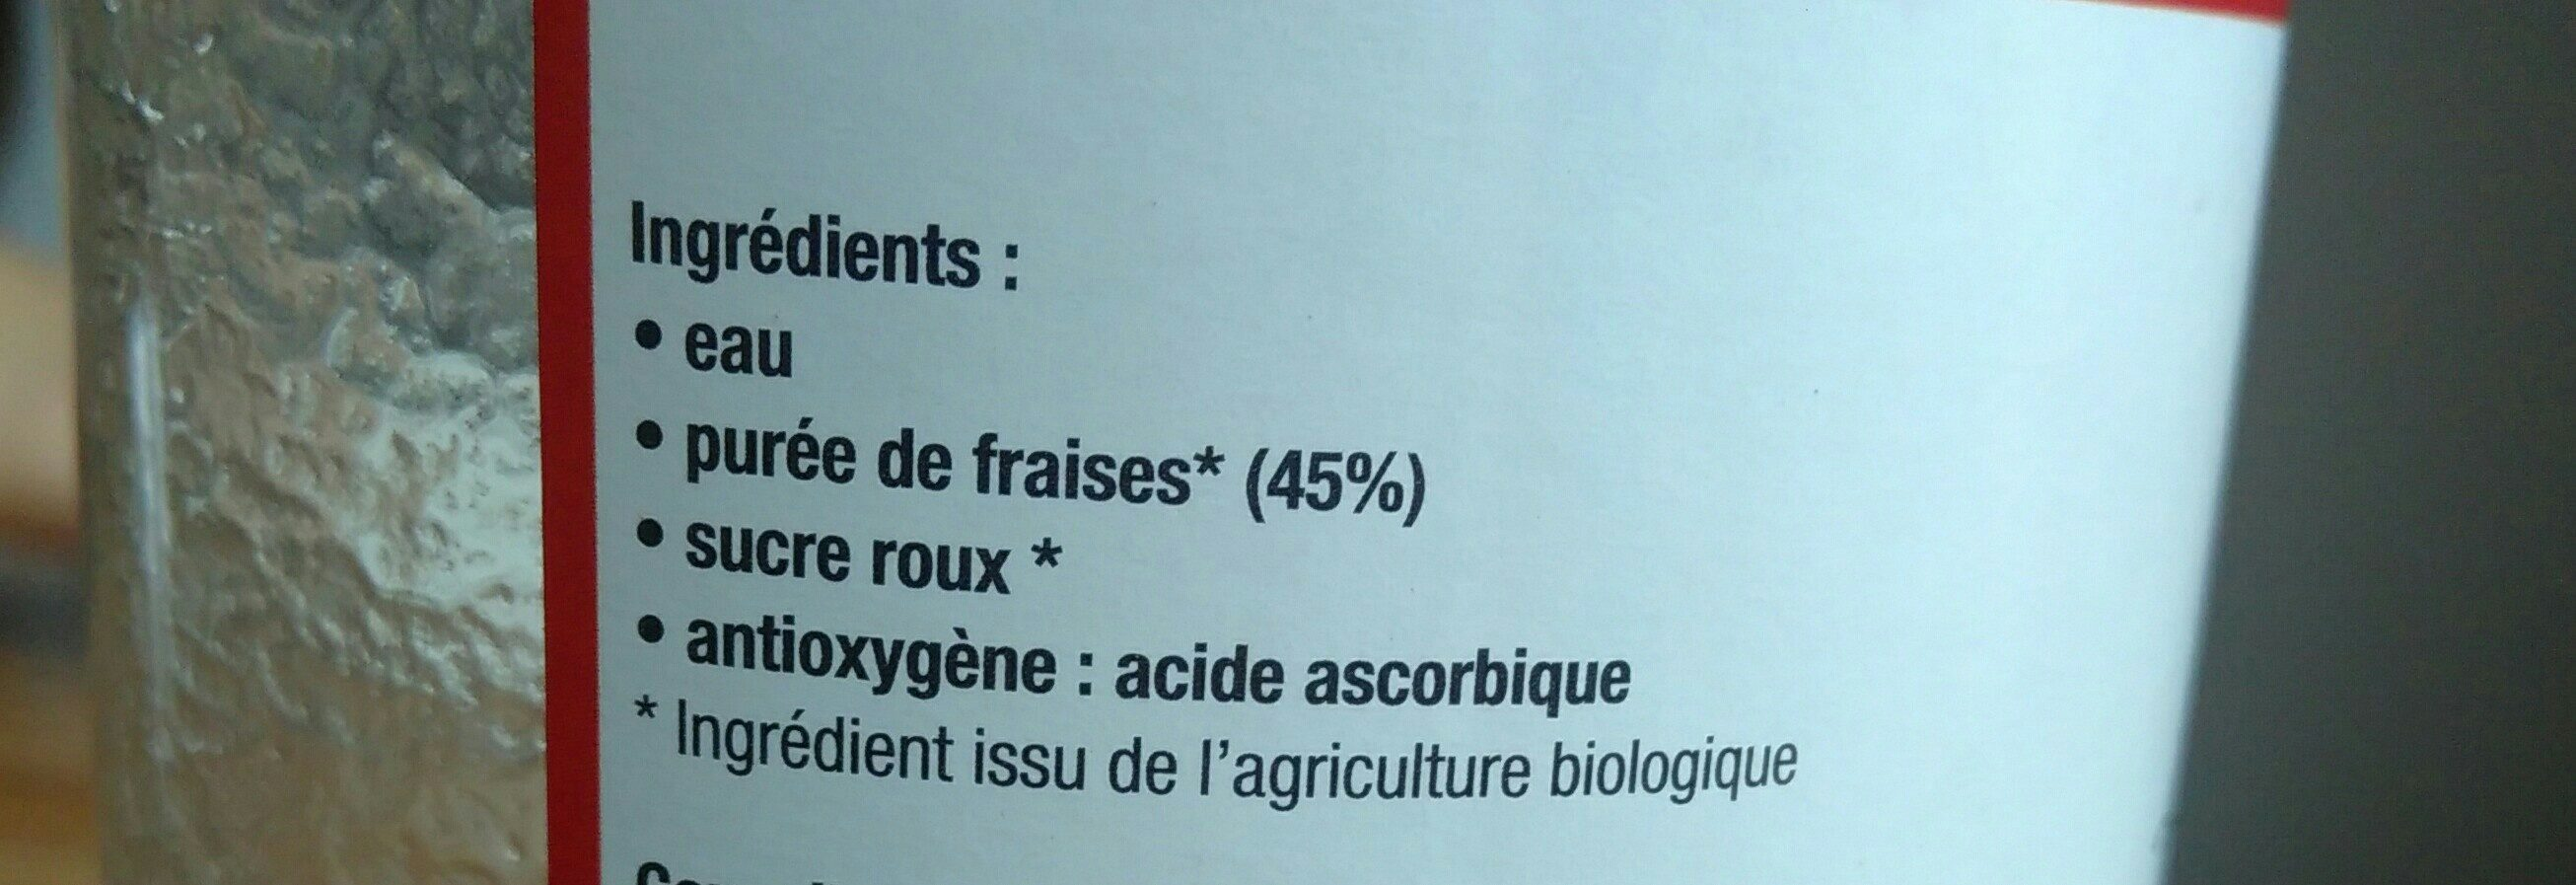 Le Nectar de Fraises - Ingredients